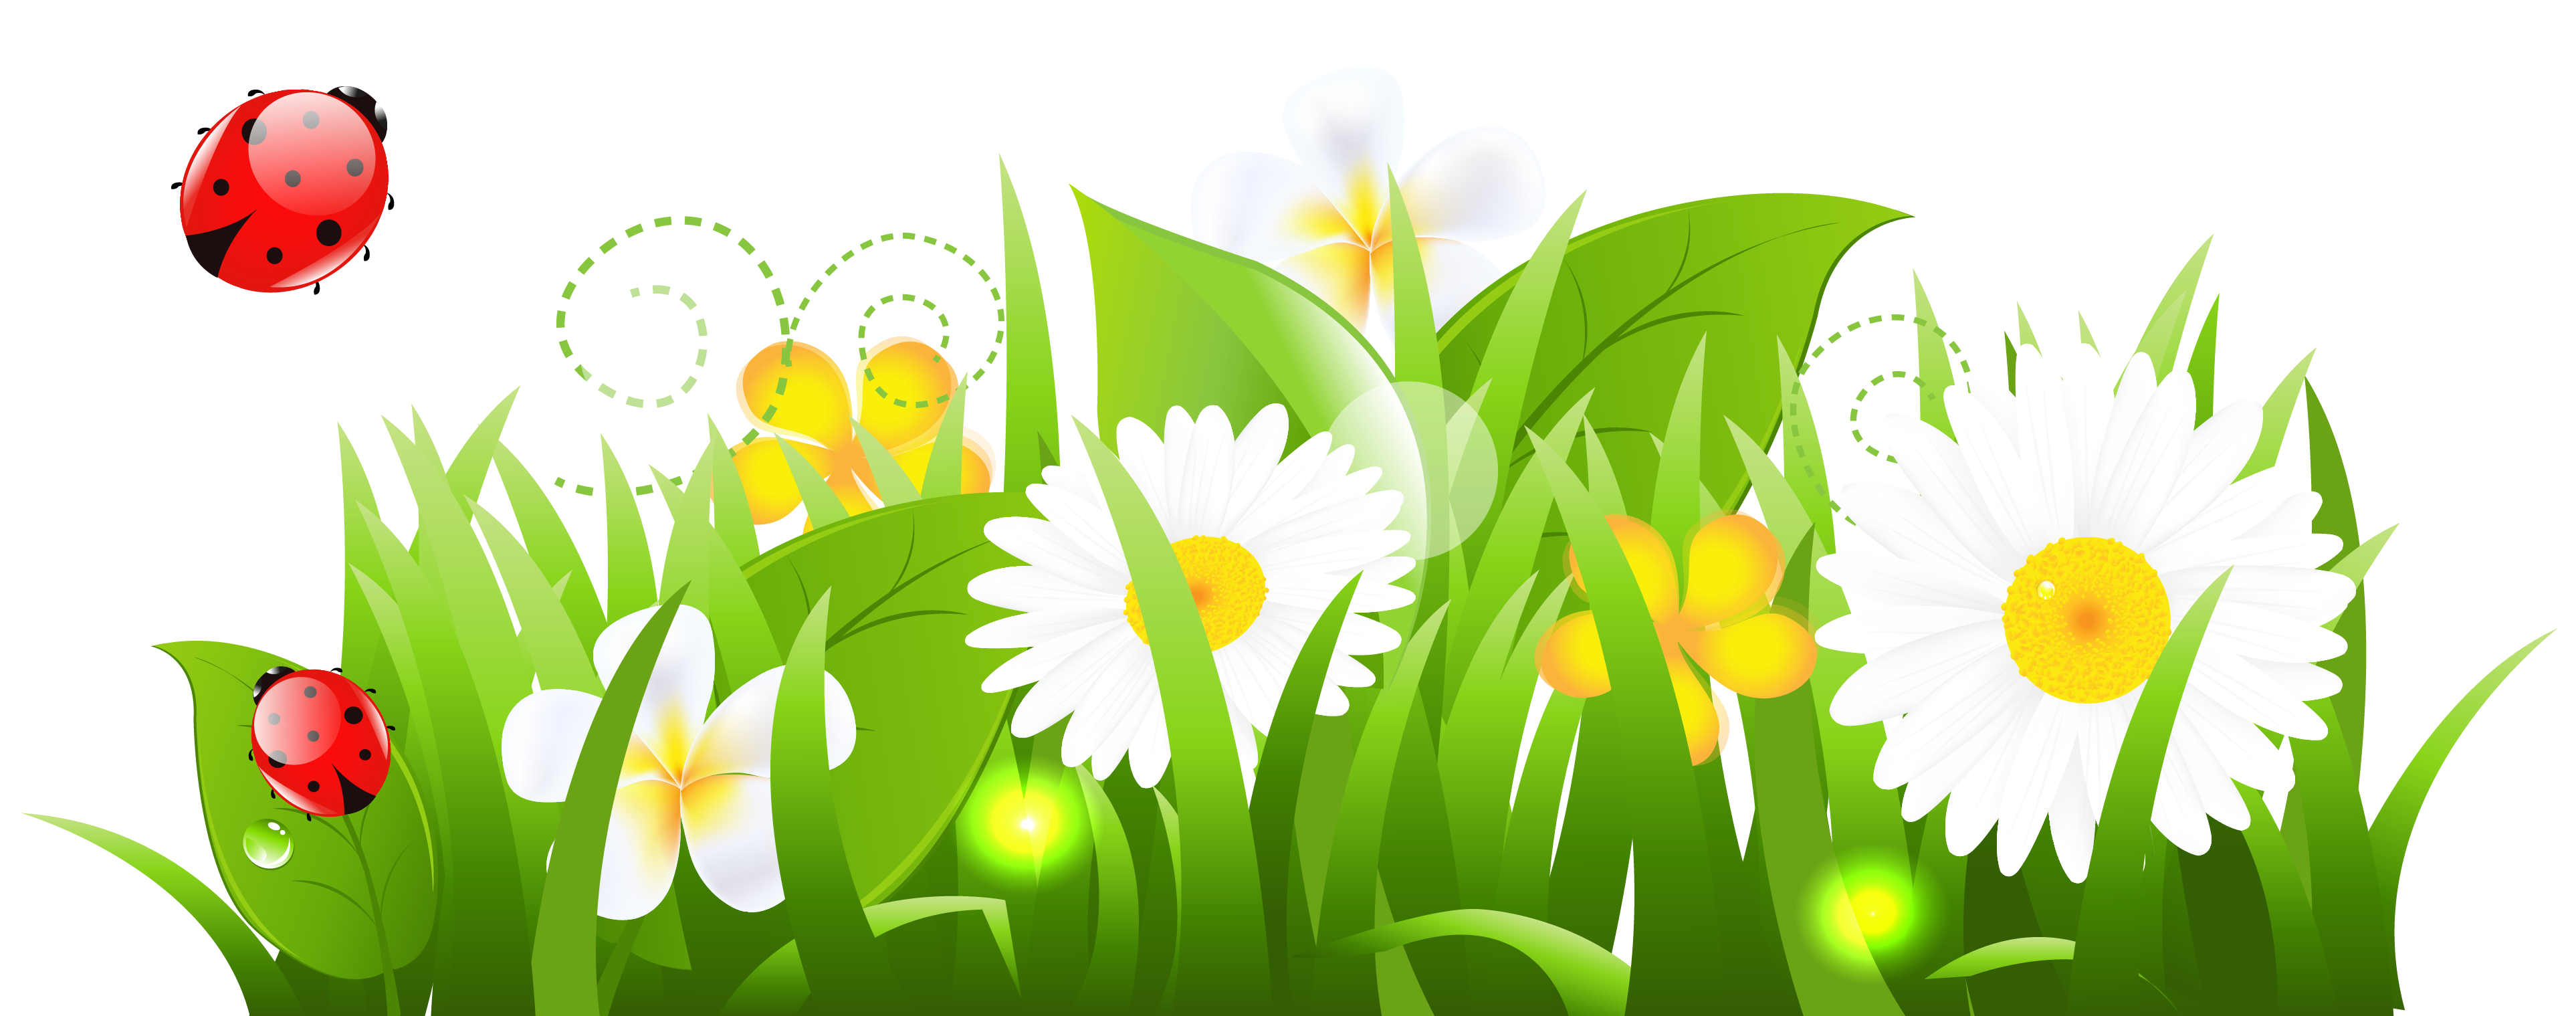 Lake clipart grassland.  collection of flower